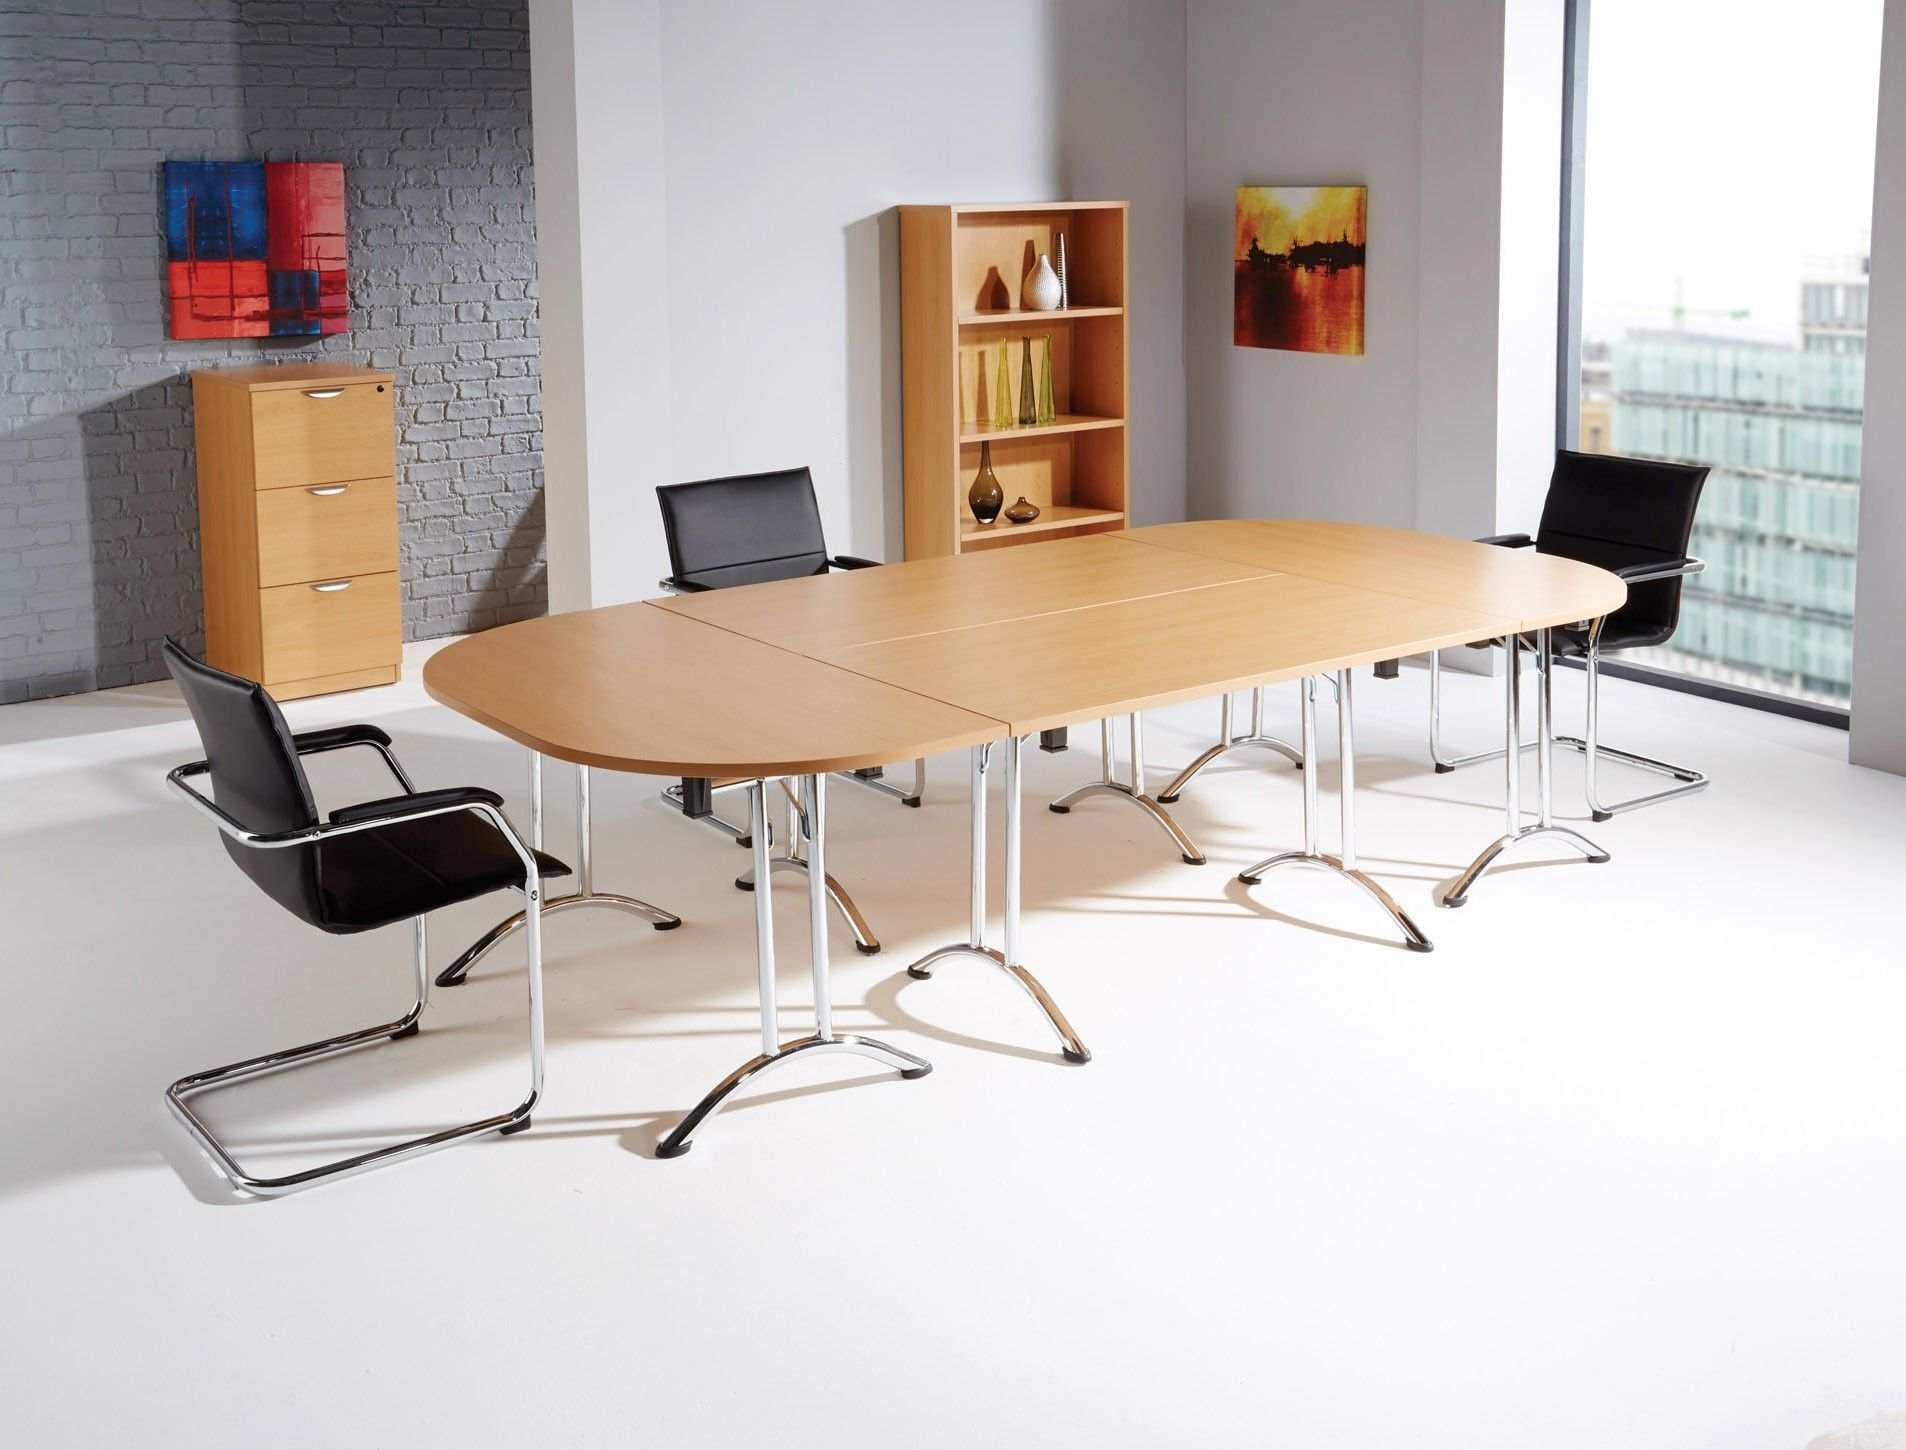 30 Collapsible Office Desk   Rustic Modern Furniture Check More At  Http://michael